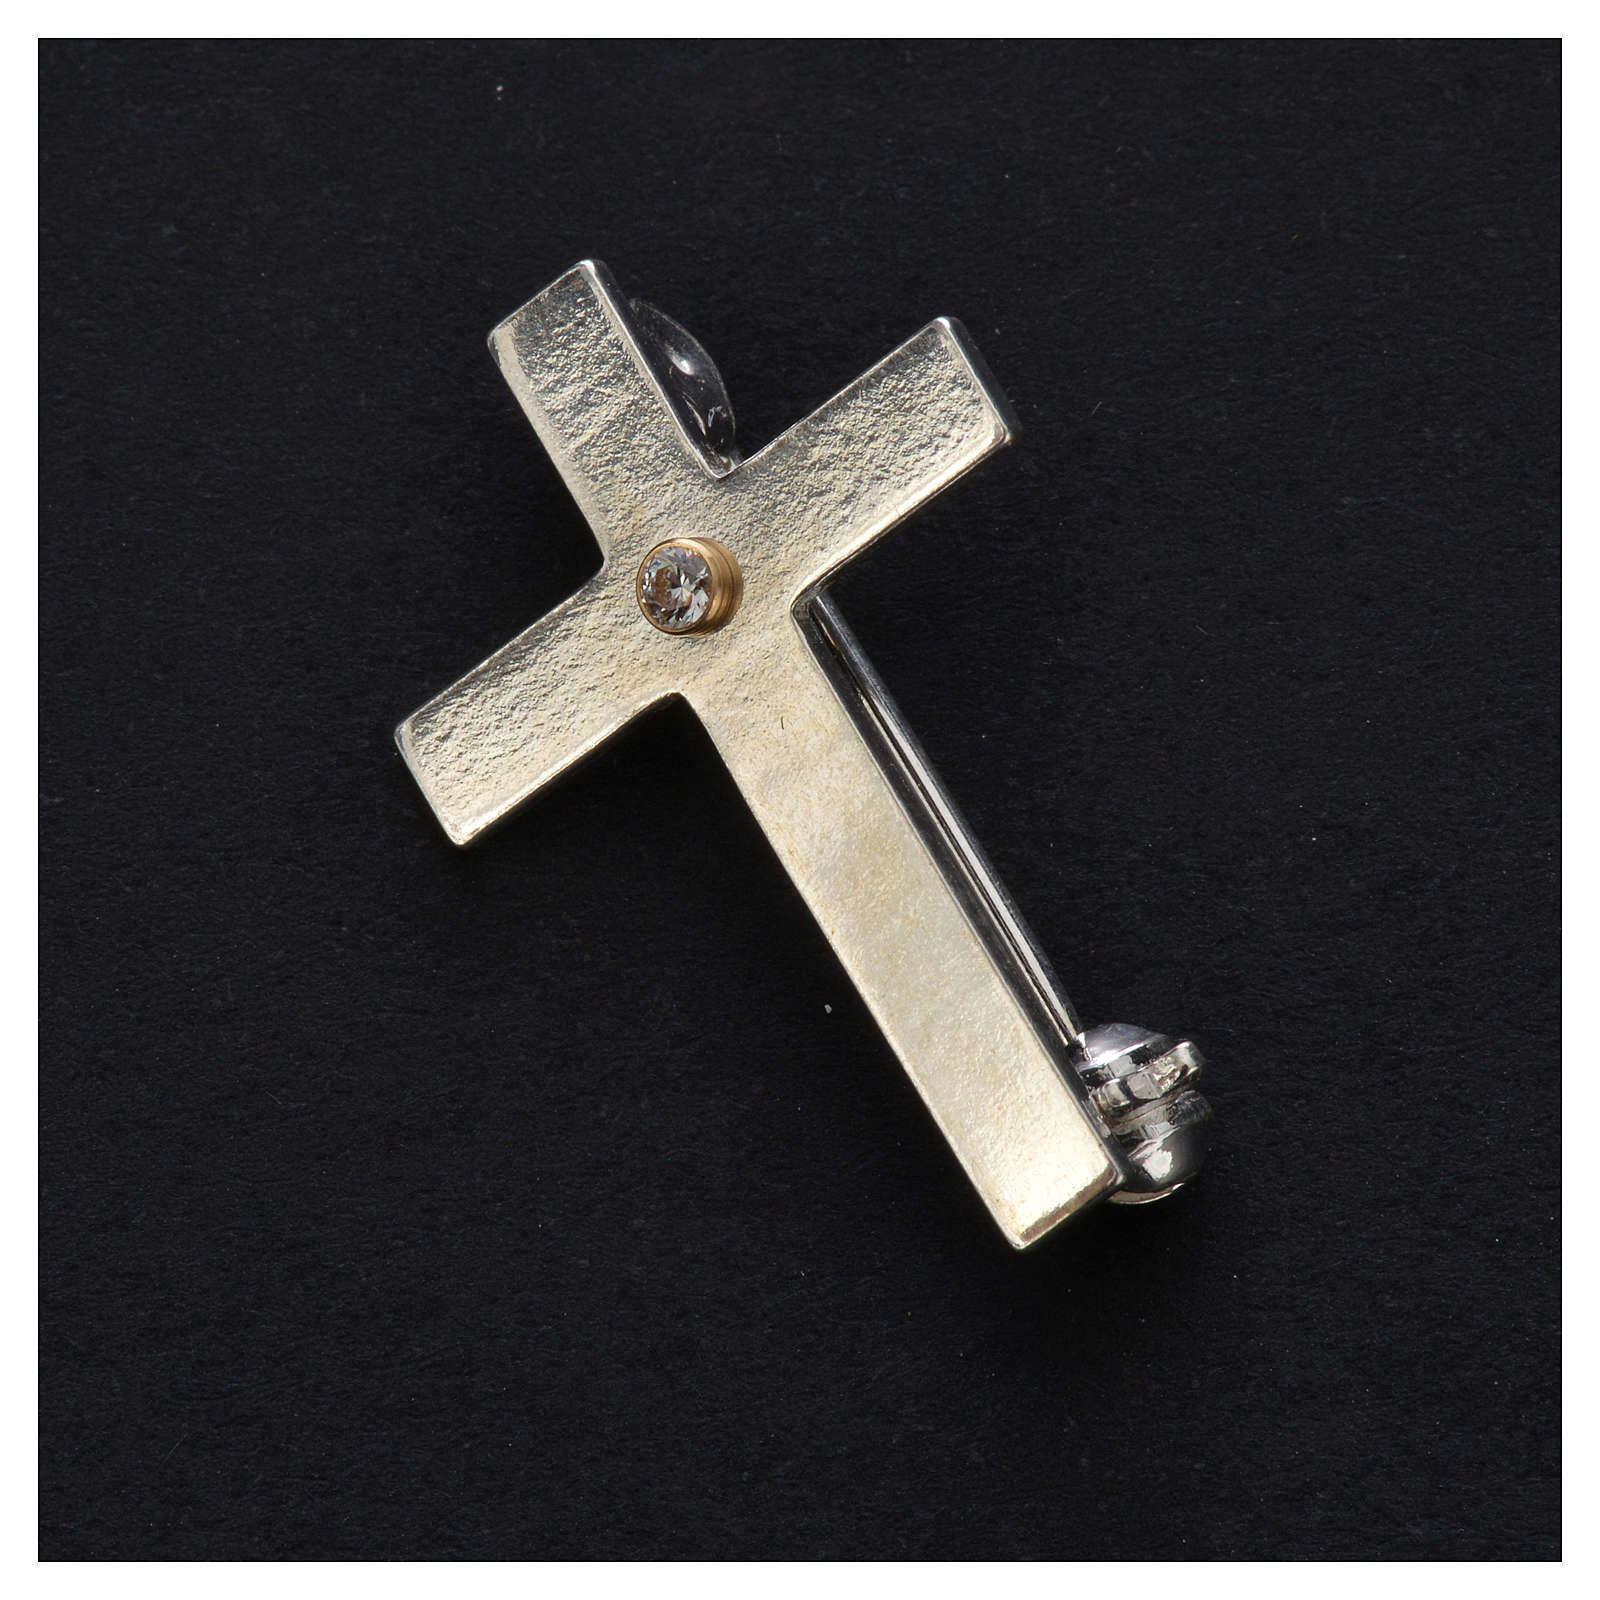 Broche clergy plata 800 4